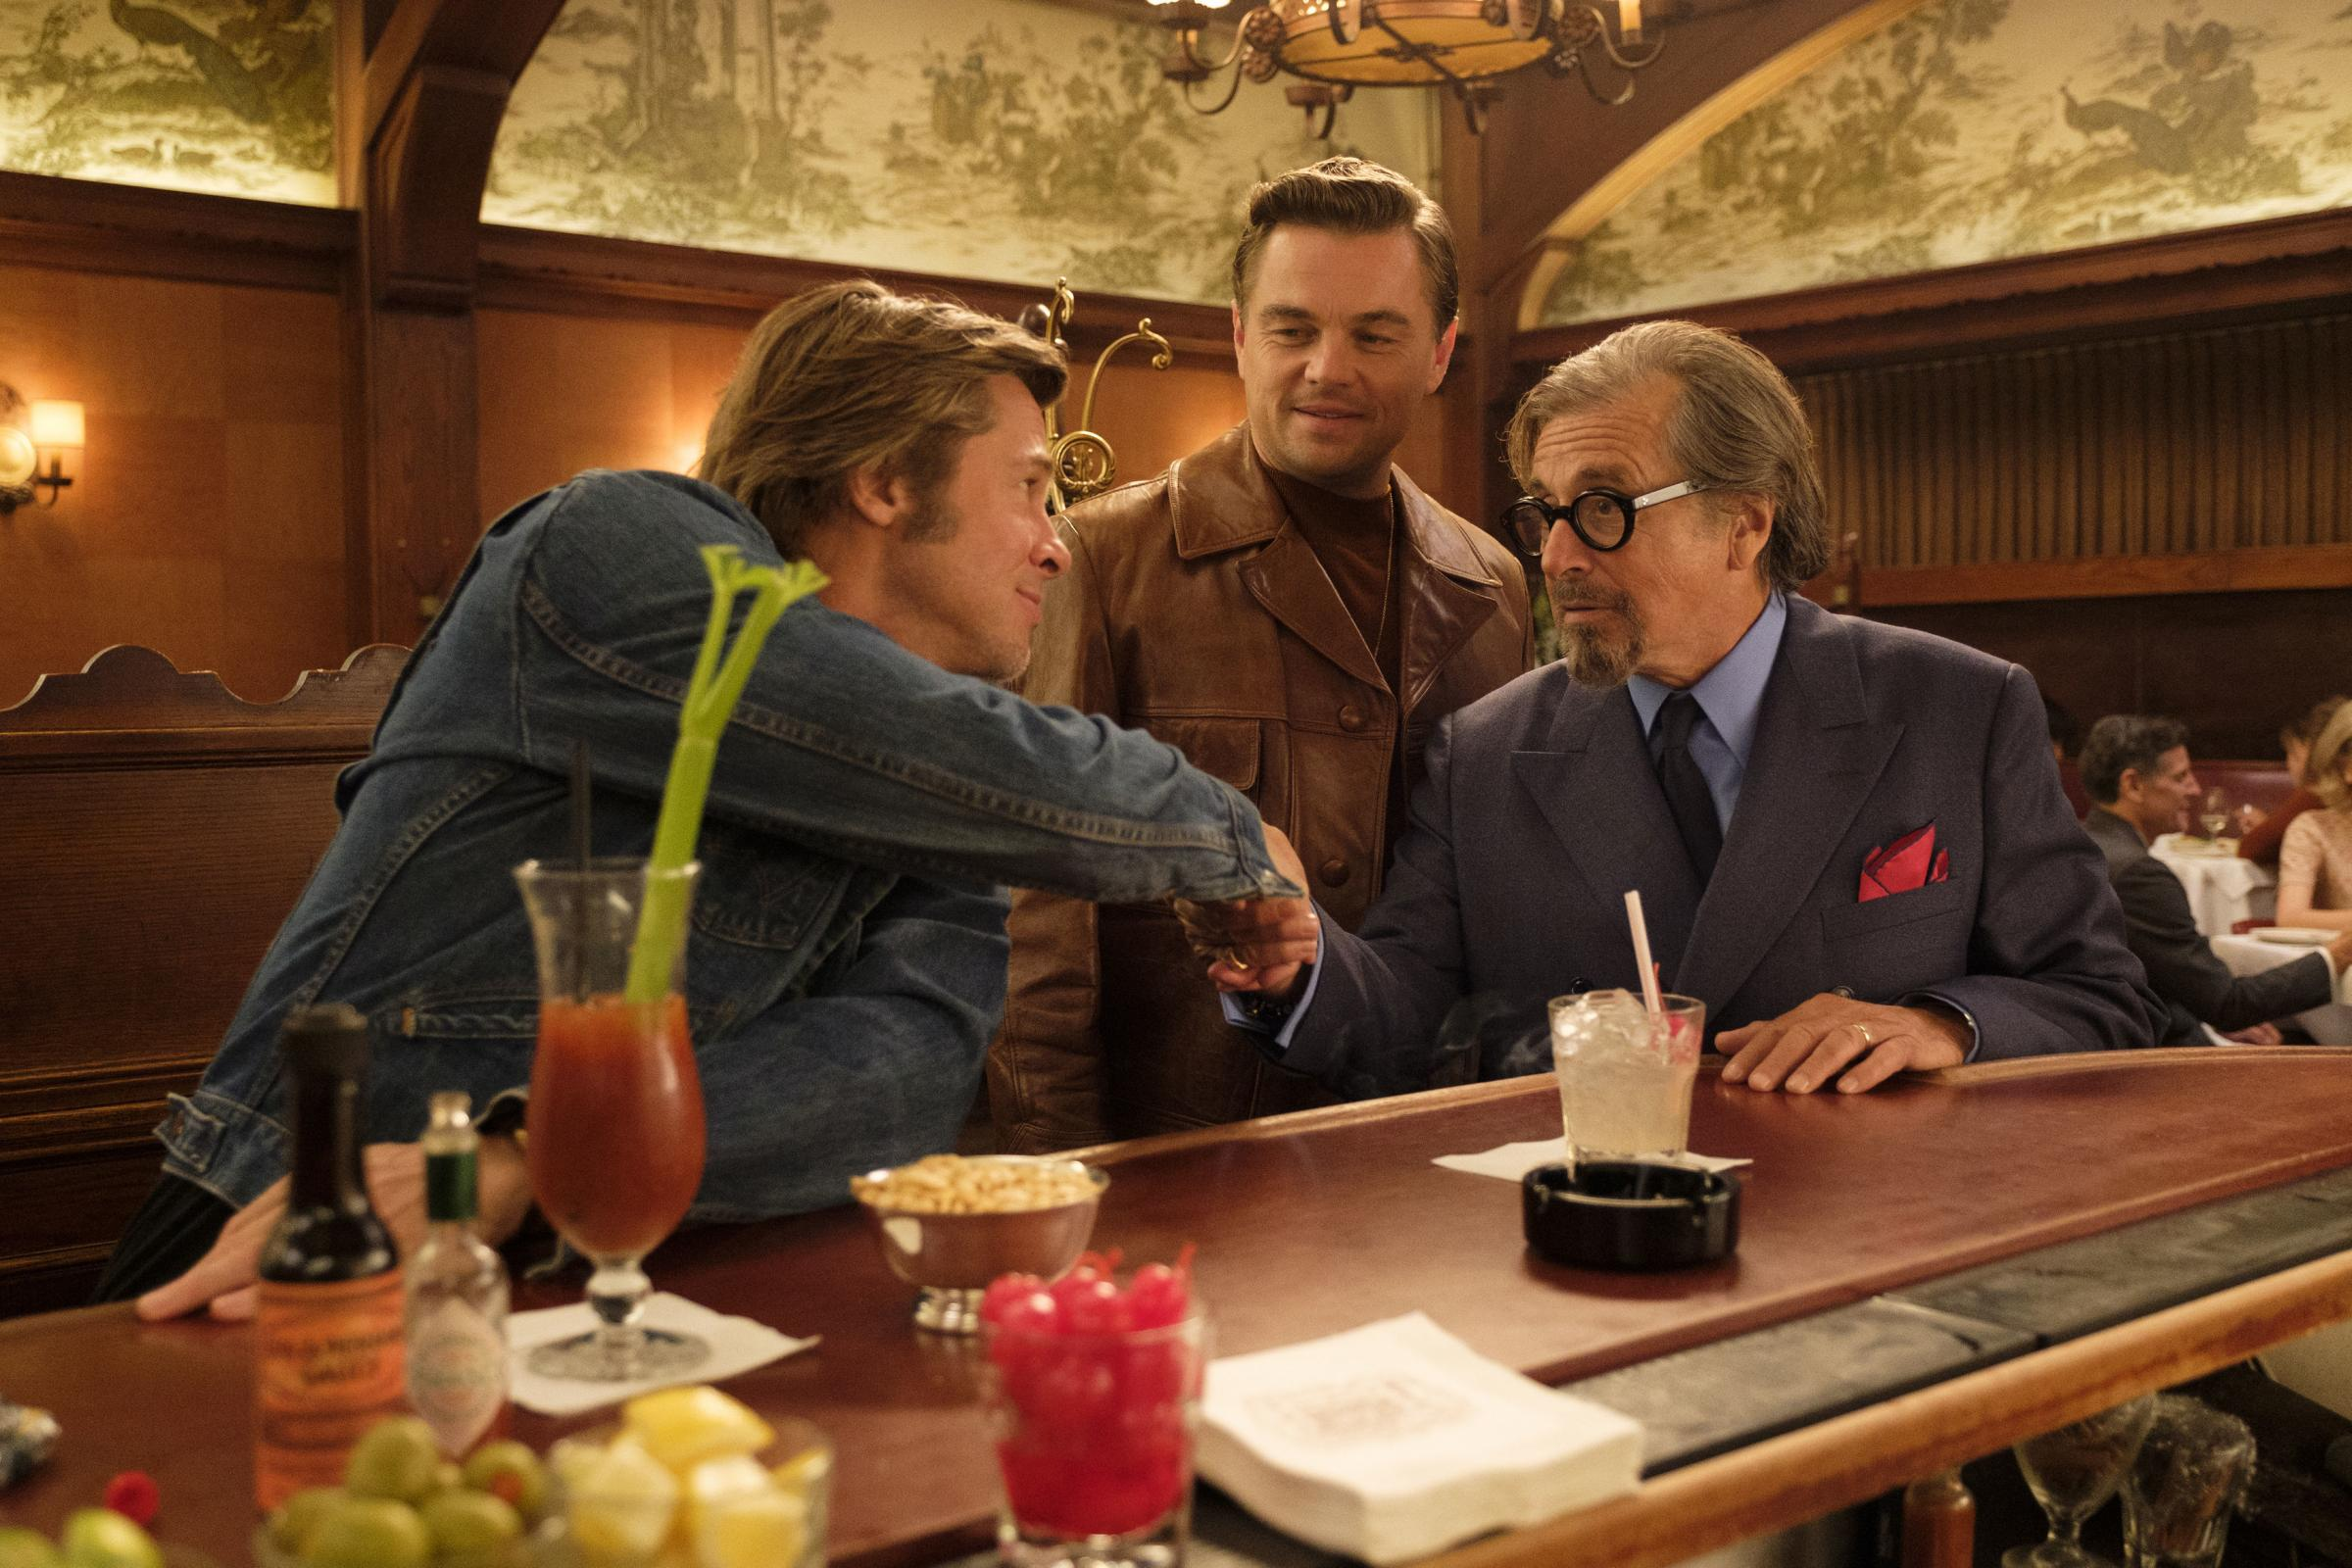 Cinema review: Once Upon A Time in Hollywood